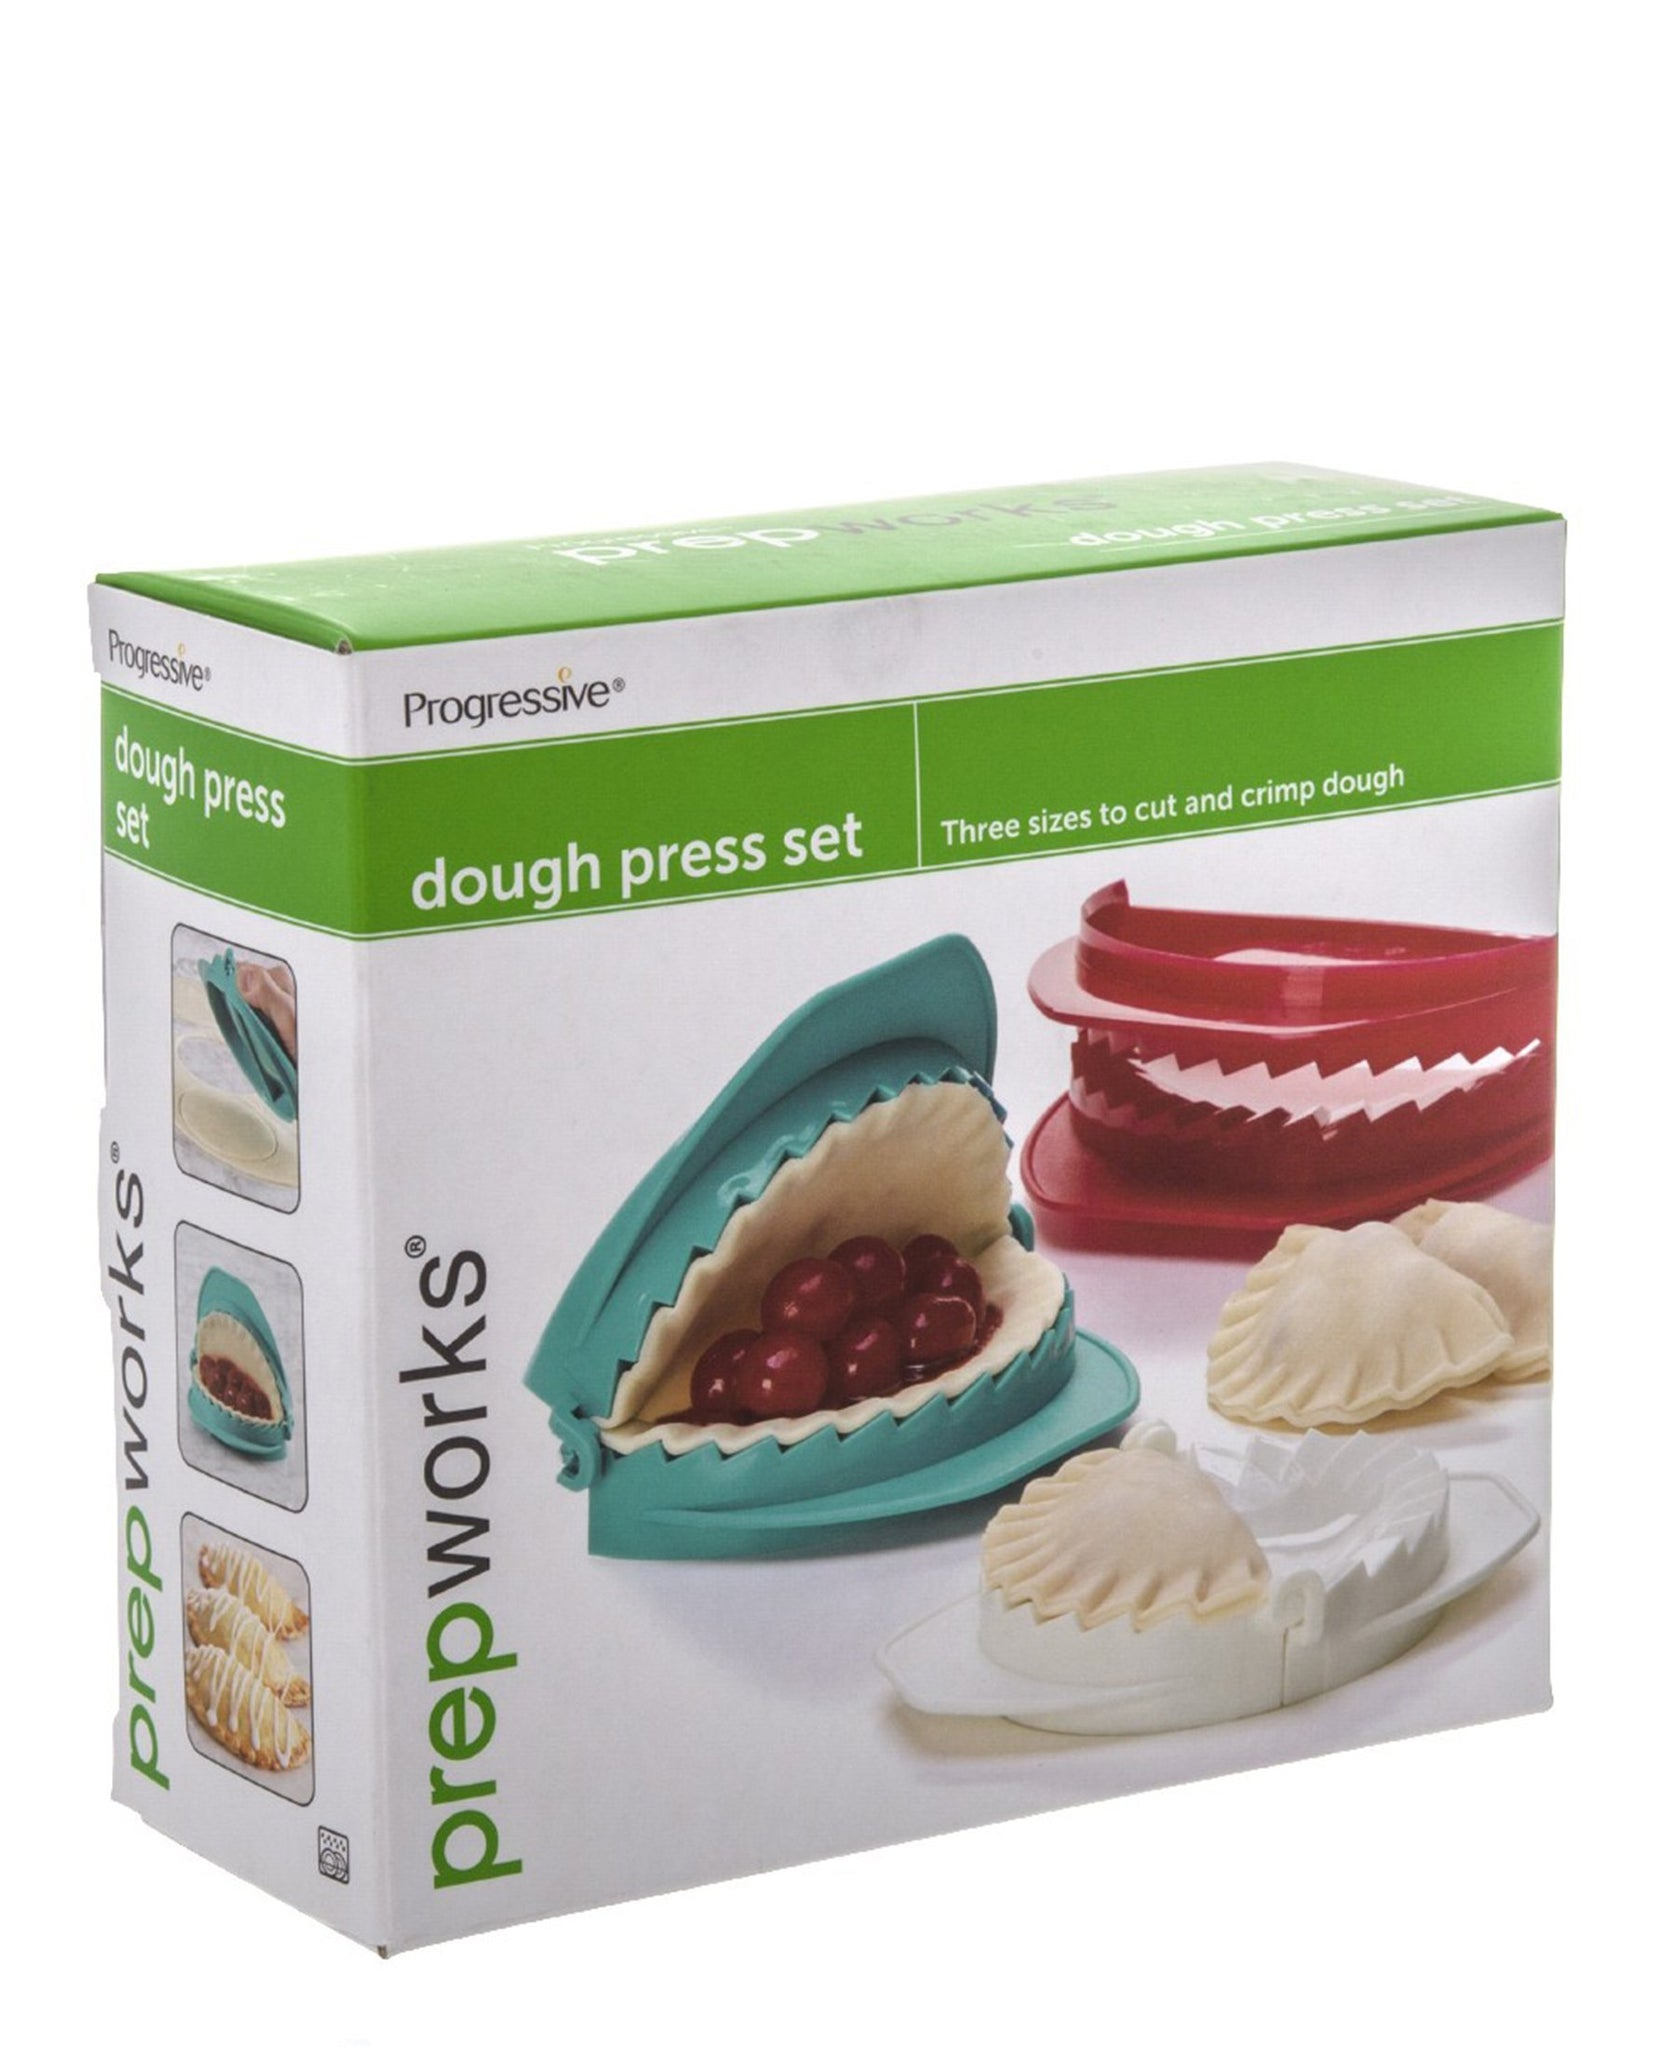 Progressive Dough Press Set - Multi